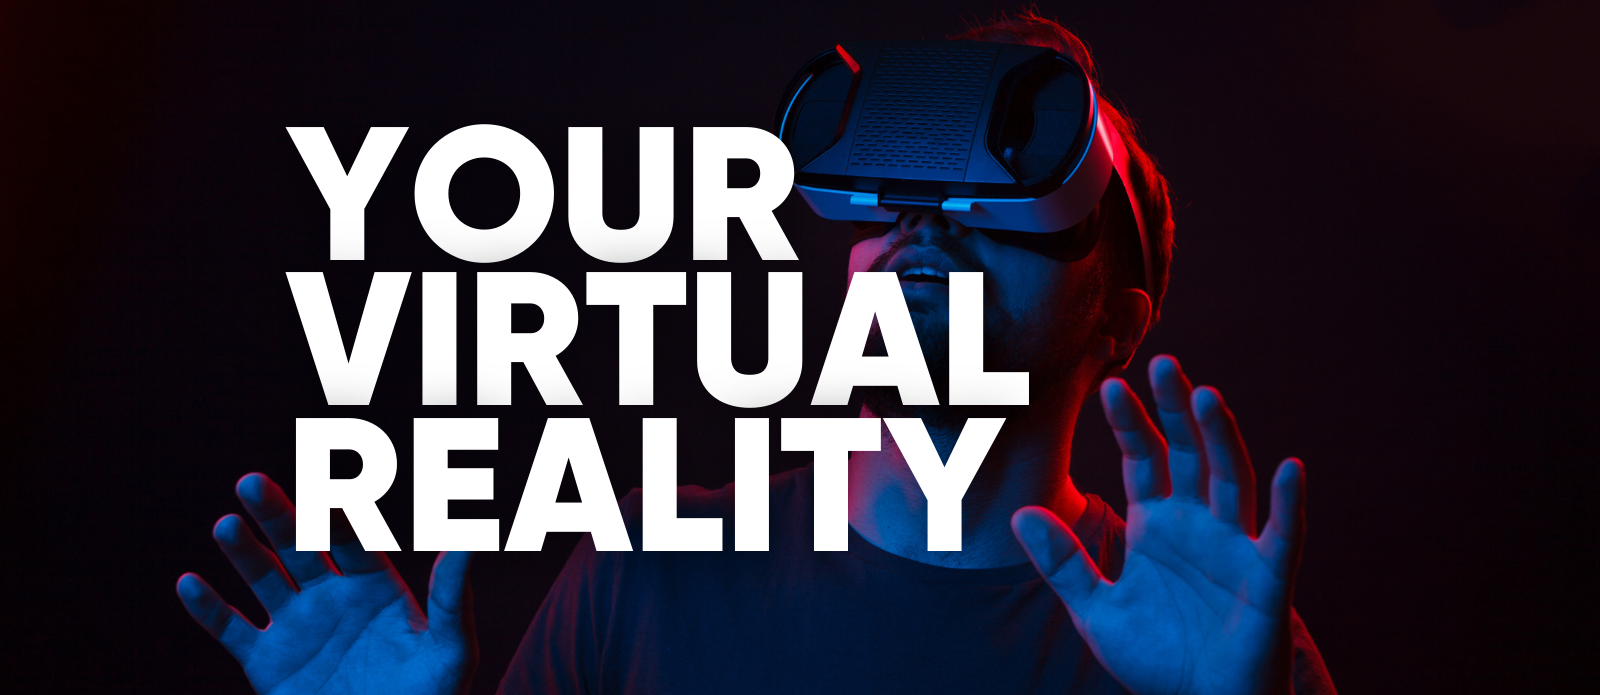 Man with VR goggles on